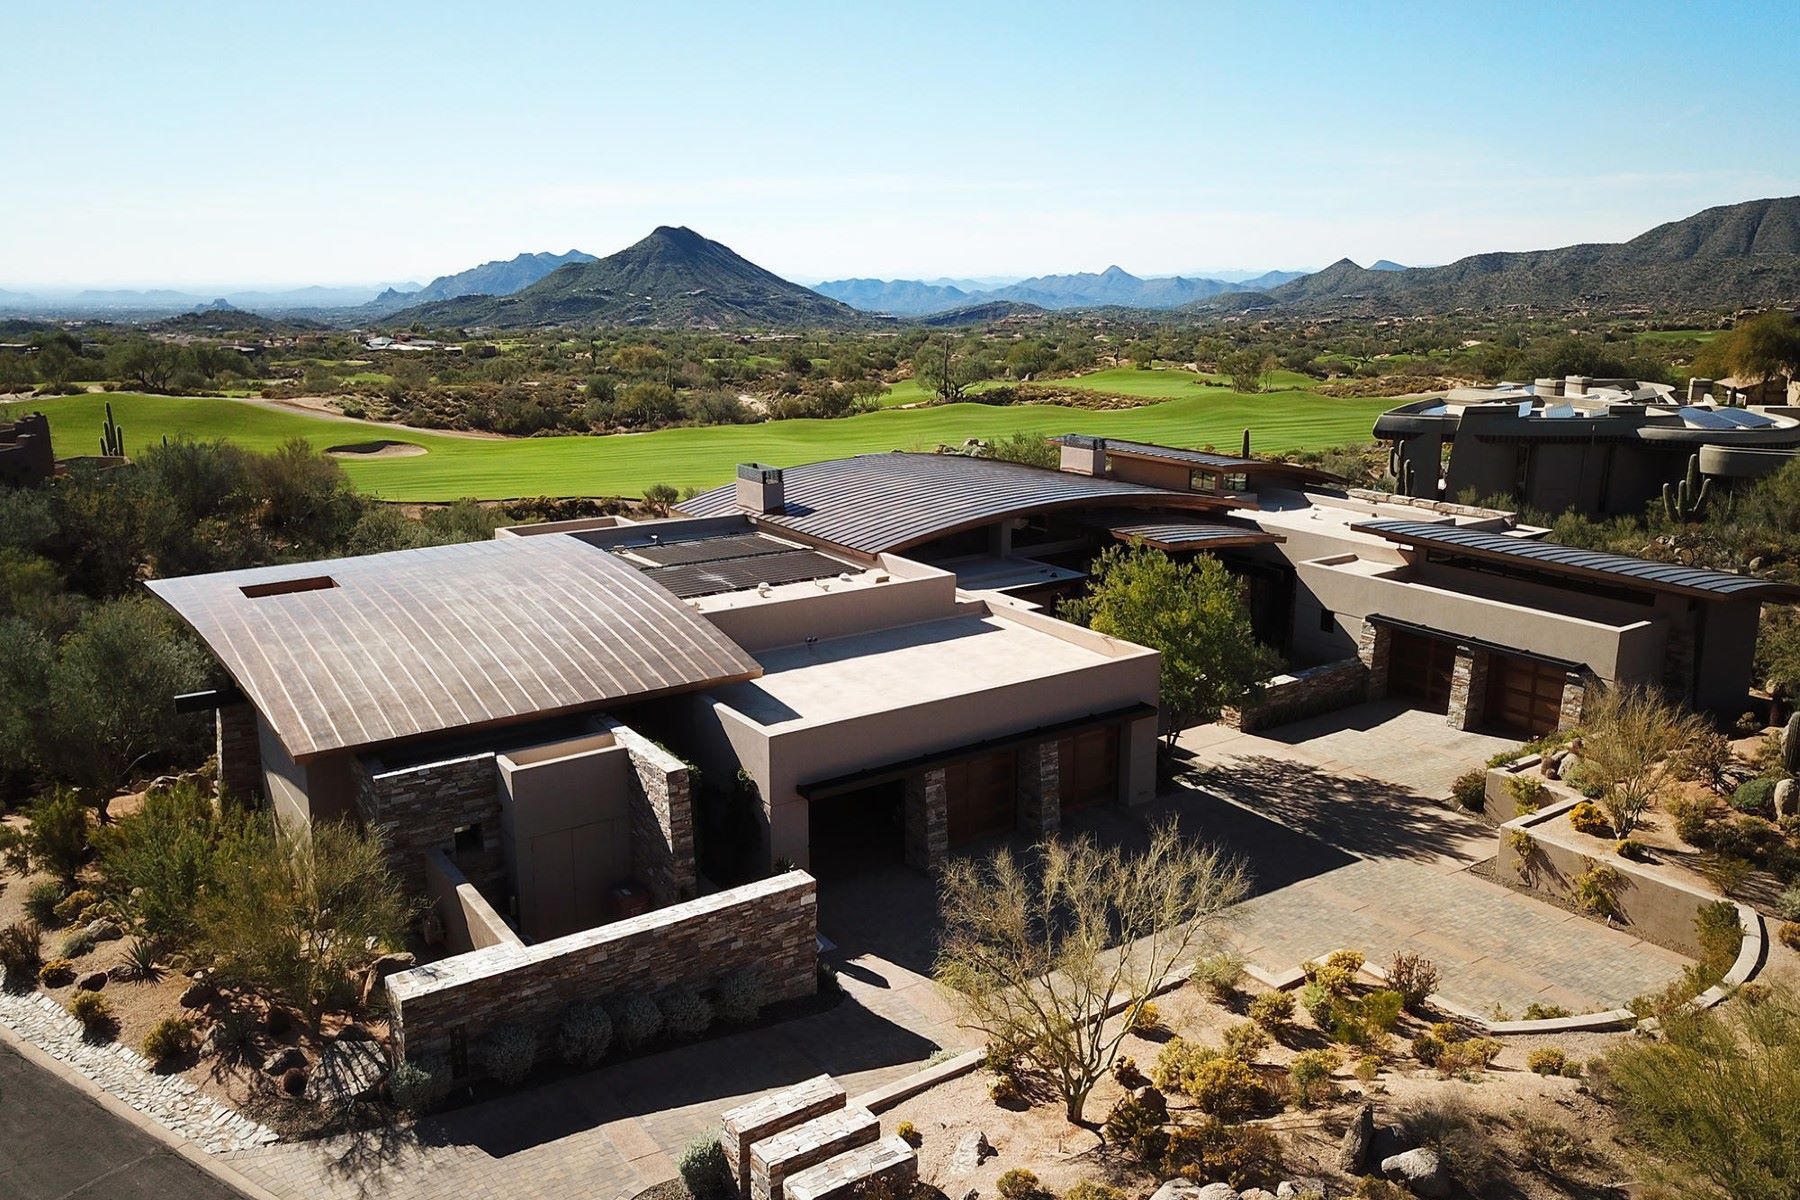 single family homes for Active at Desert Contemporary home 40648 N 107TH ST Scottsdale, Arizona 85262 United States